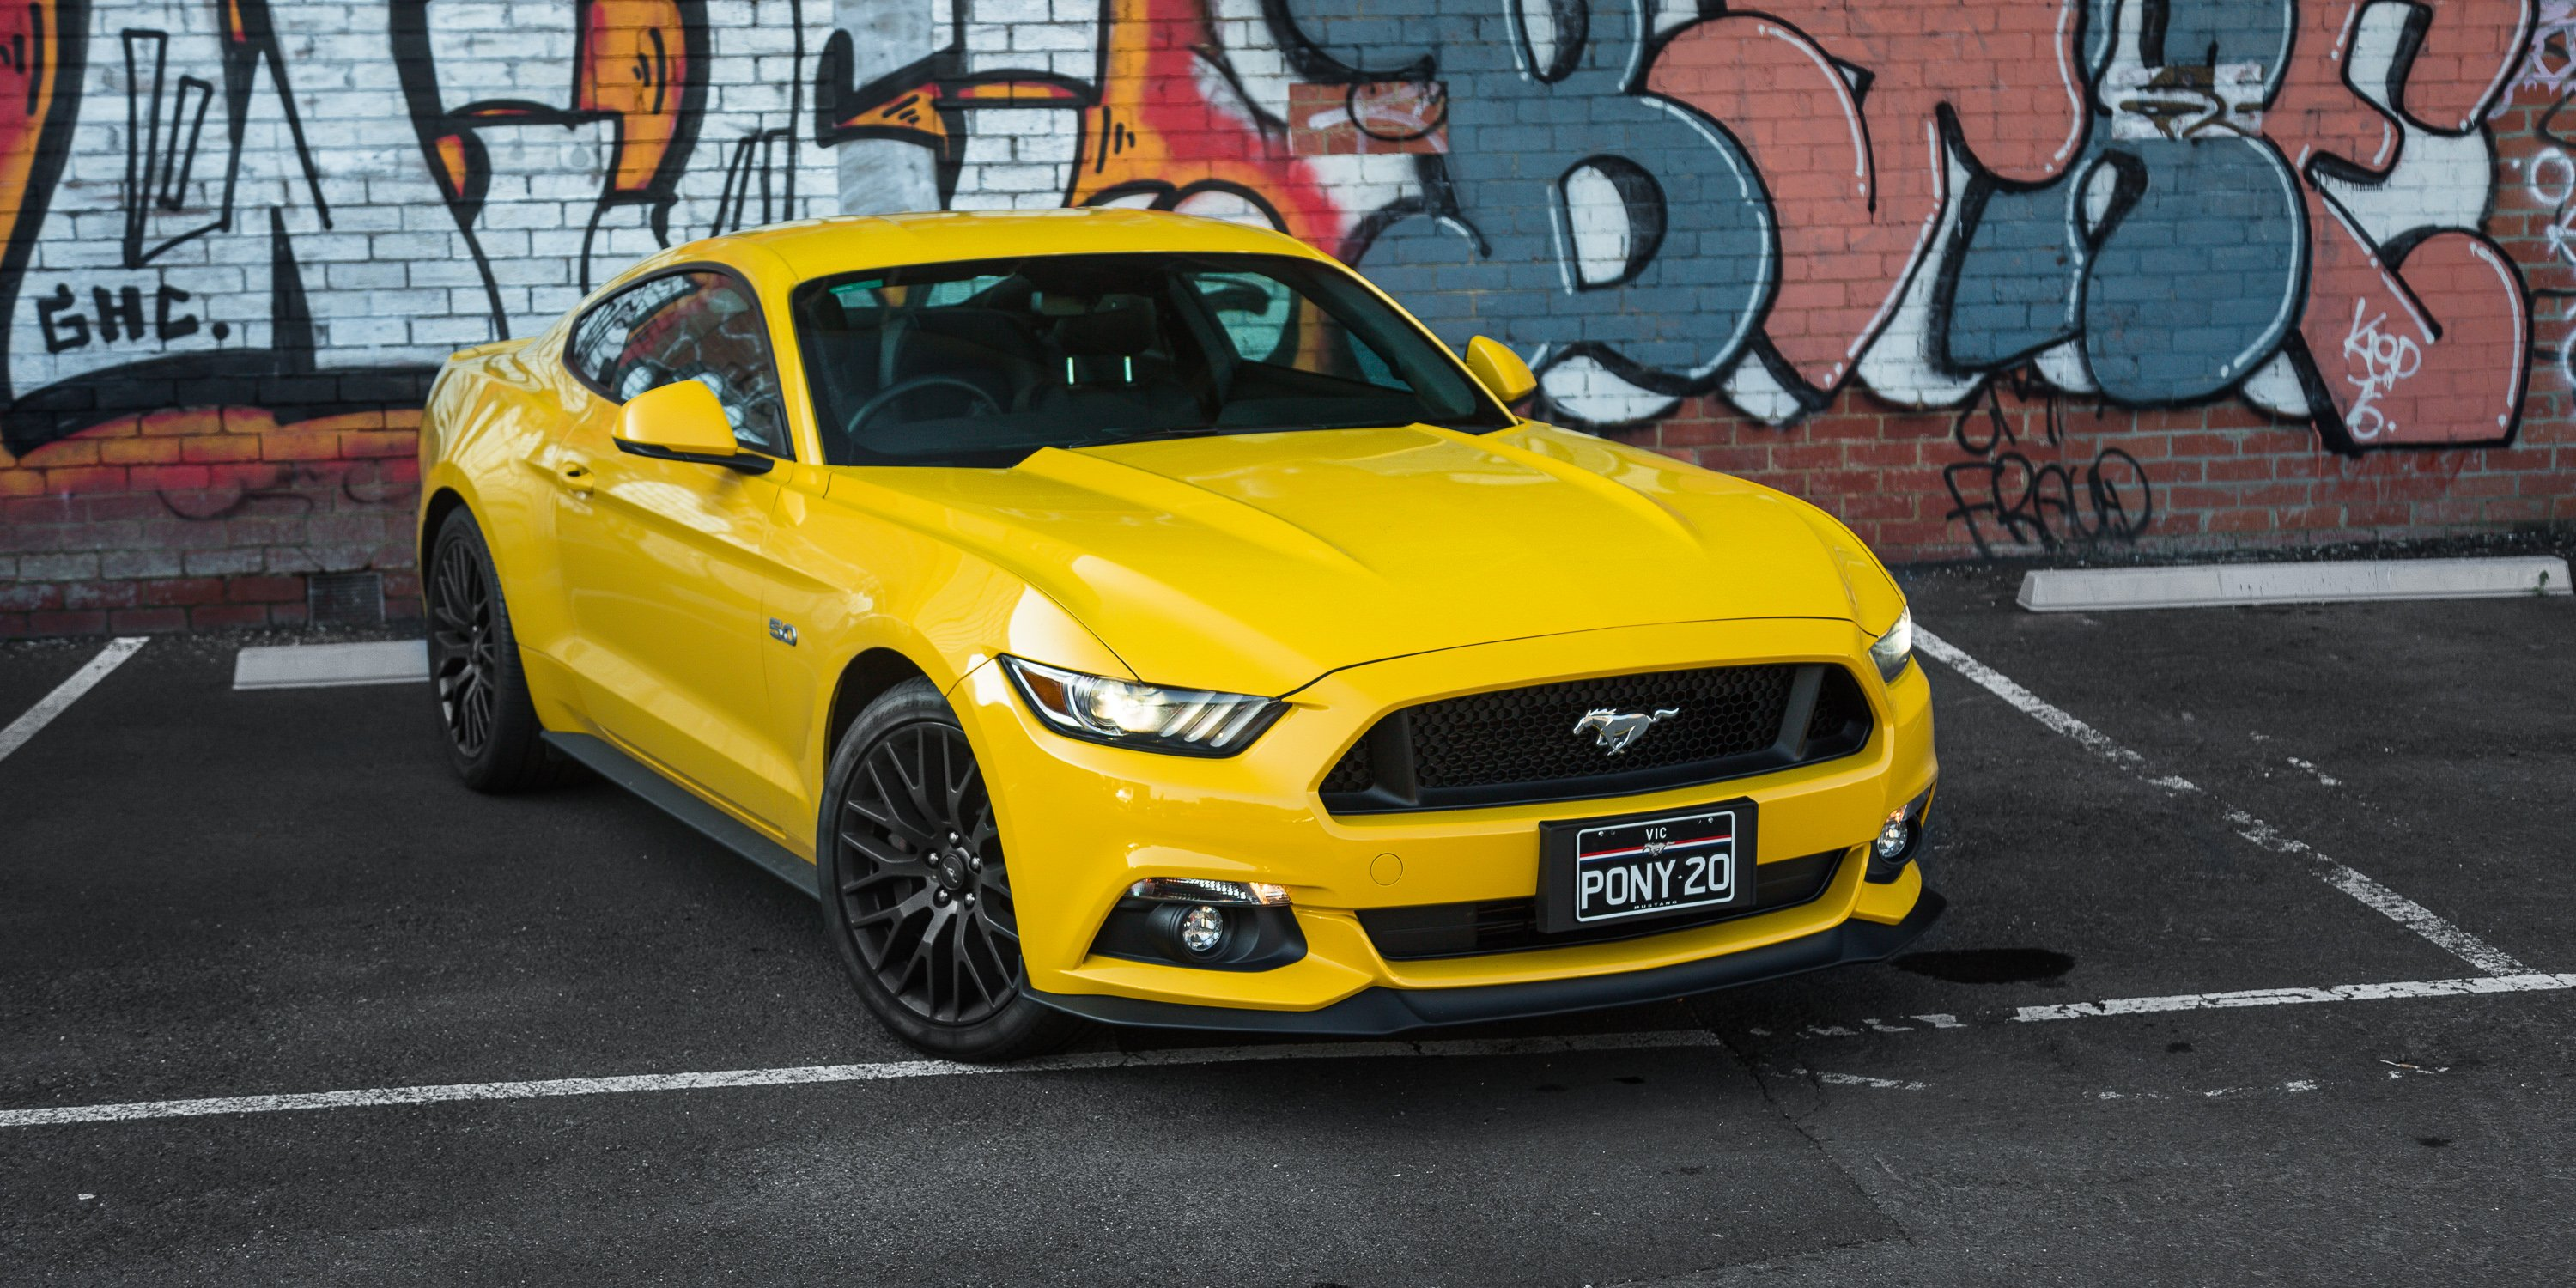 2017 ford mustang gt fastback review long term report two first impressions photos. Black Bedroom Furniture Sets. Home Design Ideas